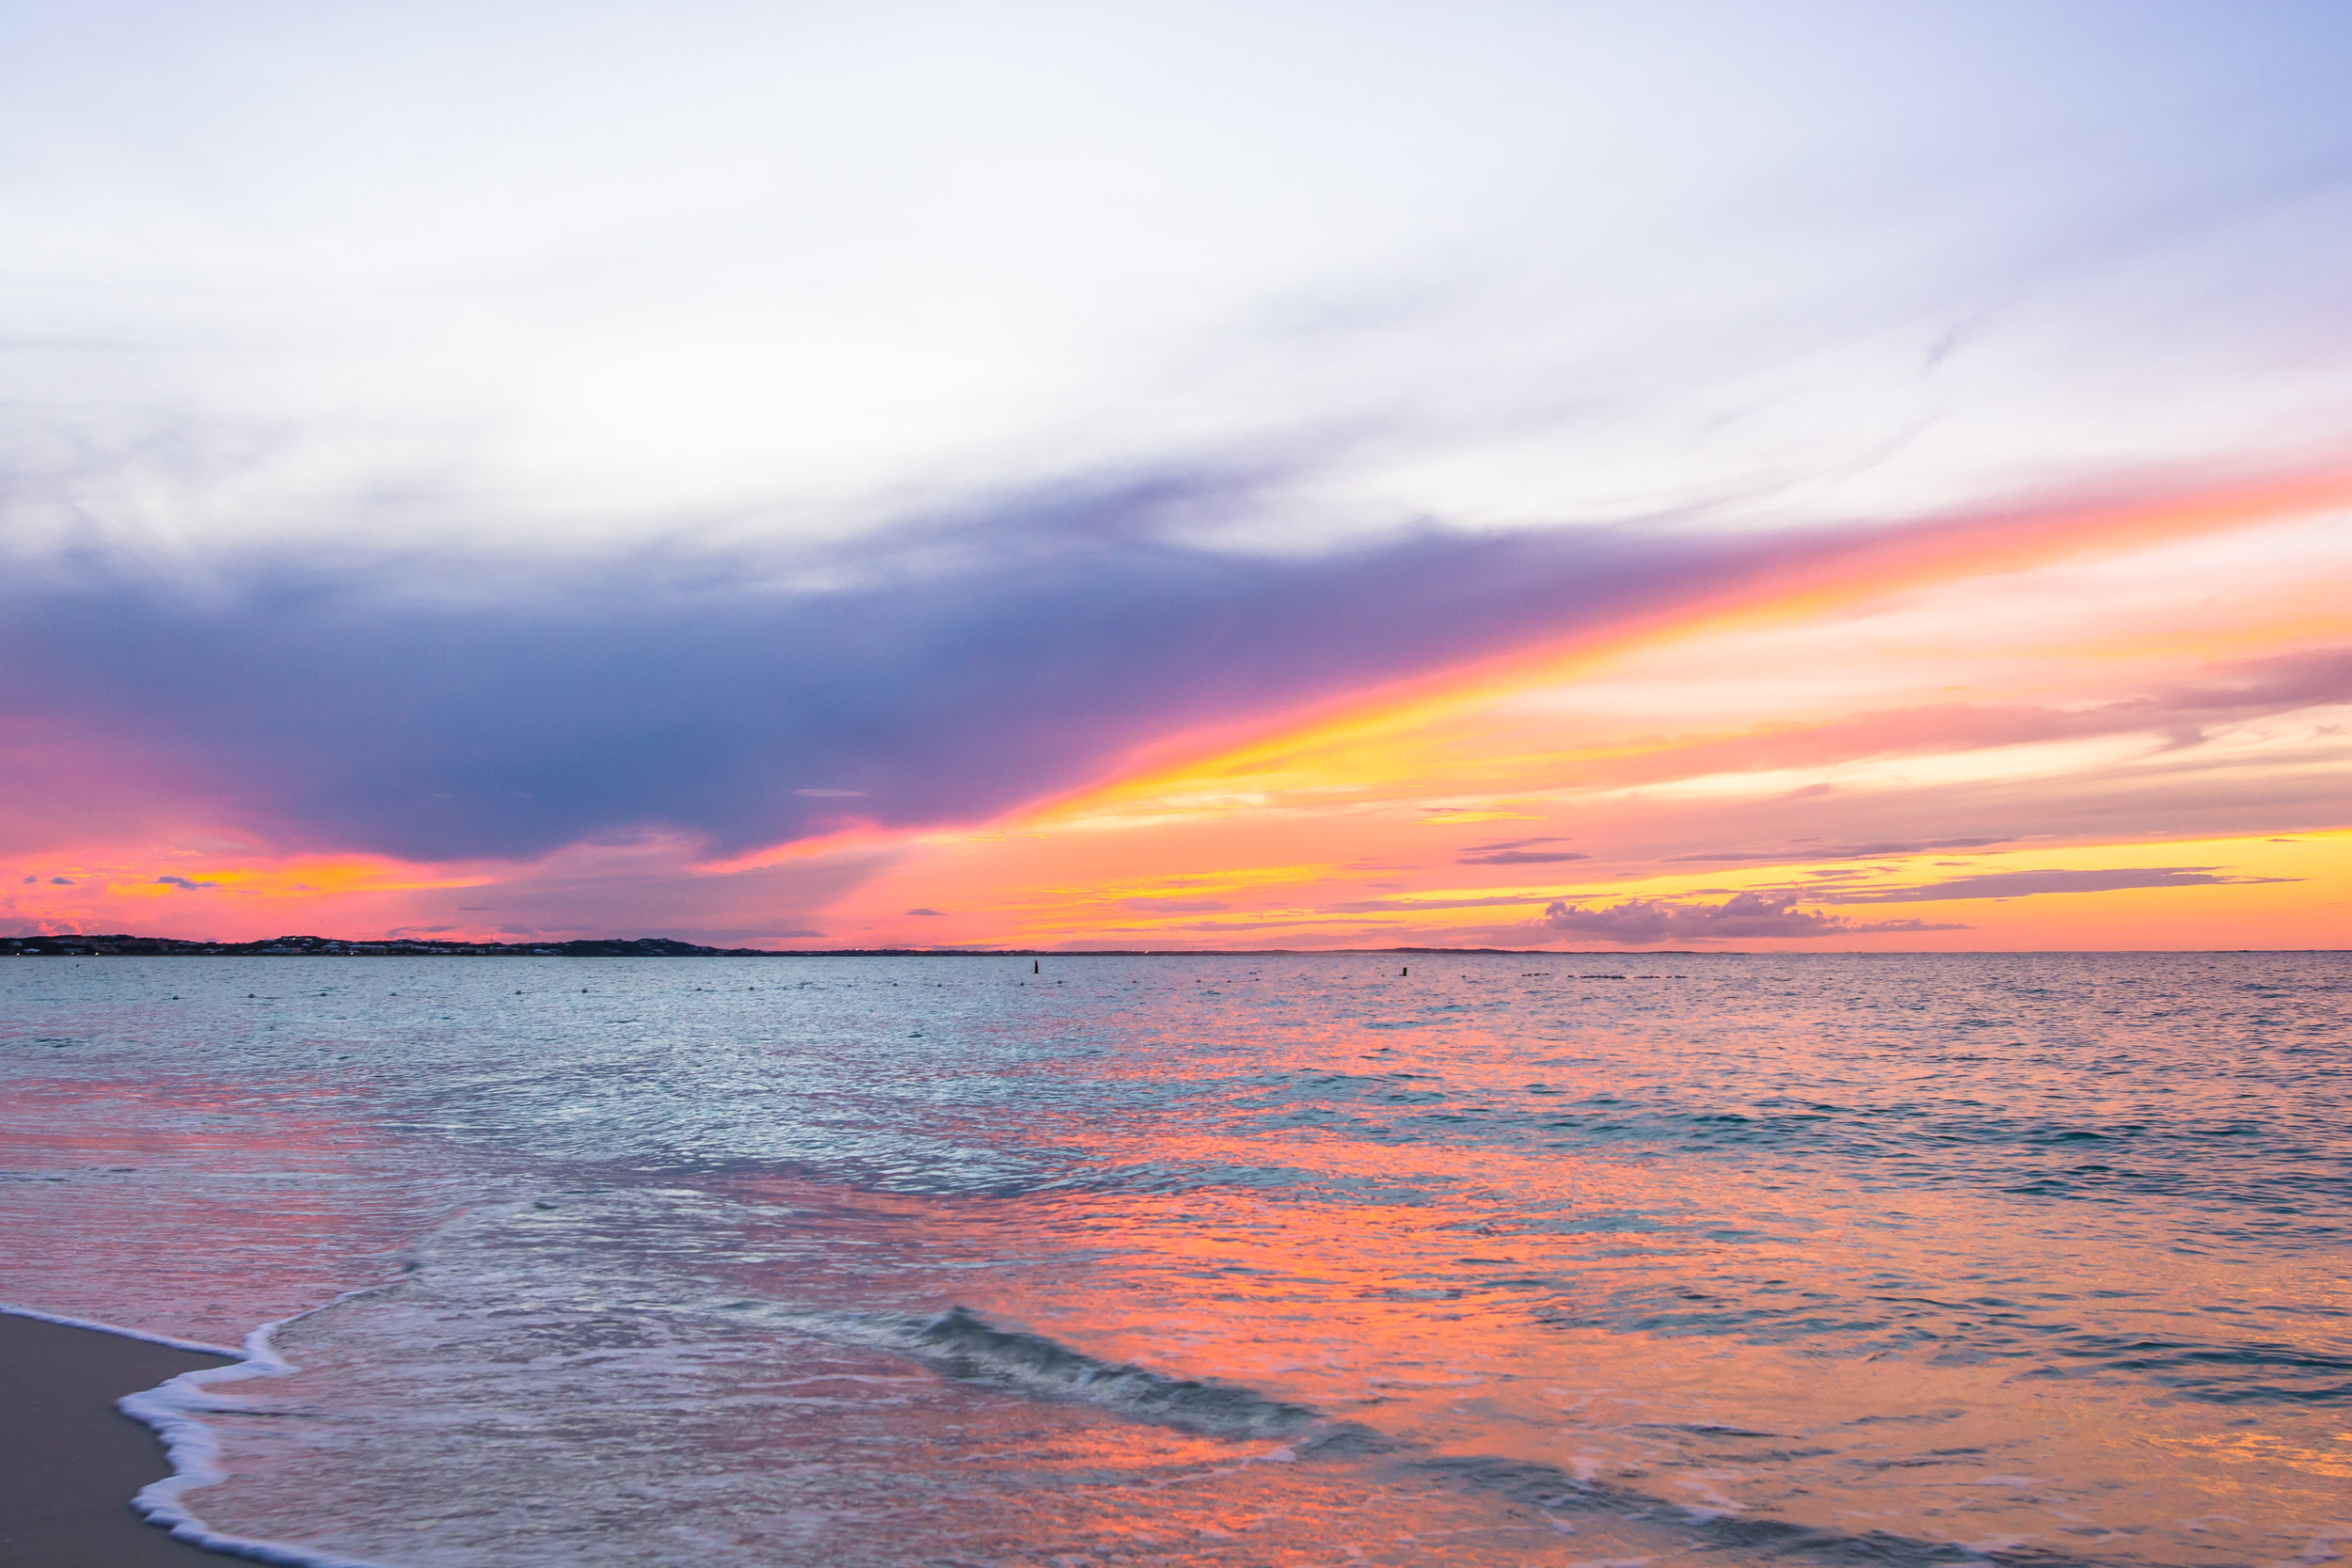 October: Sweet Heaven, Providenciales, TCI - I've documented this as one of the first gorgeous sunsets after the storms.